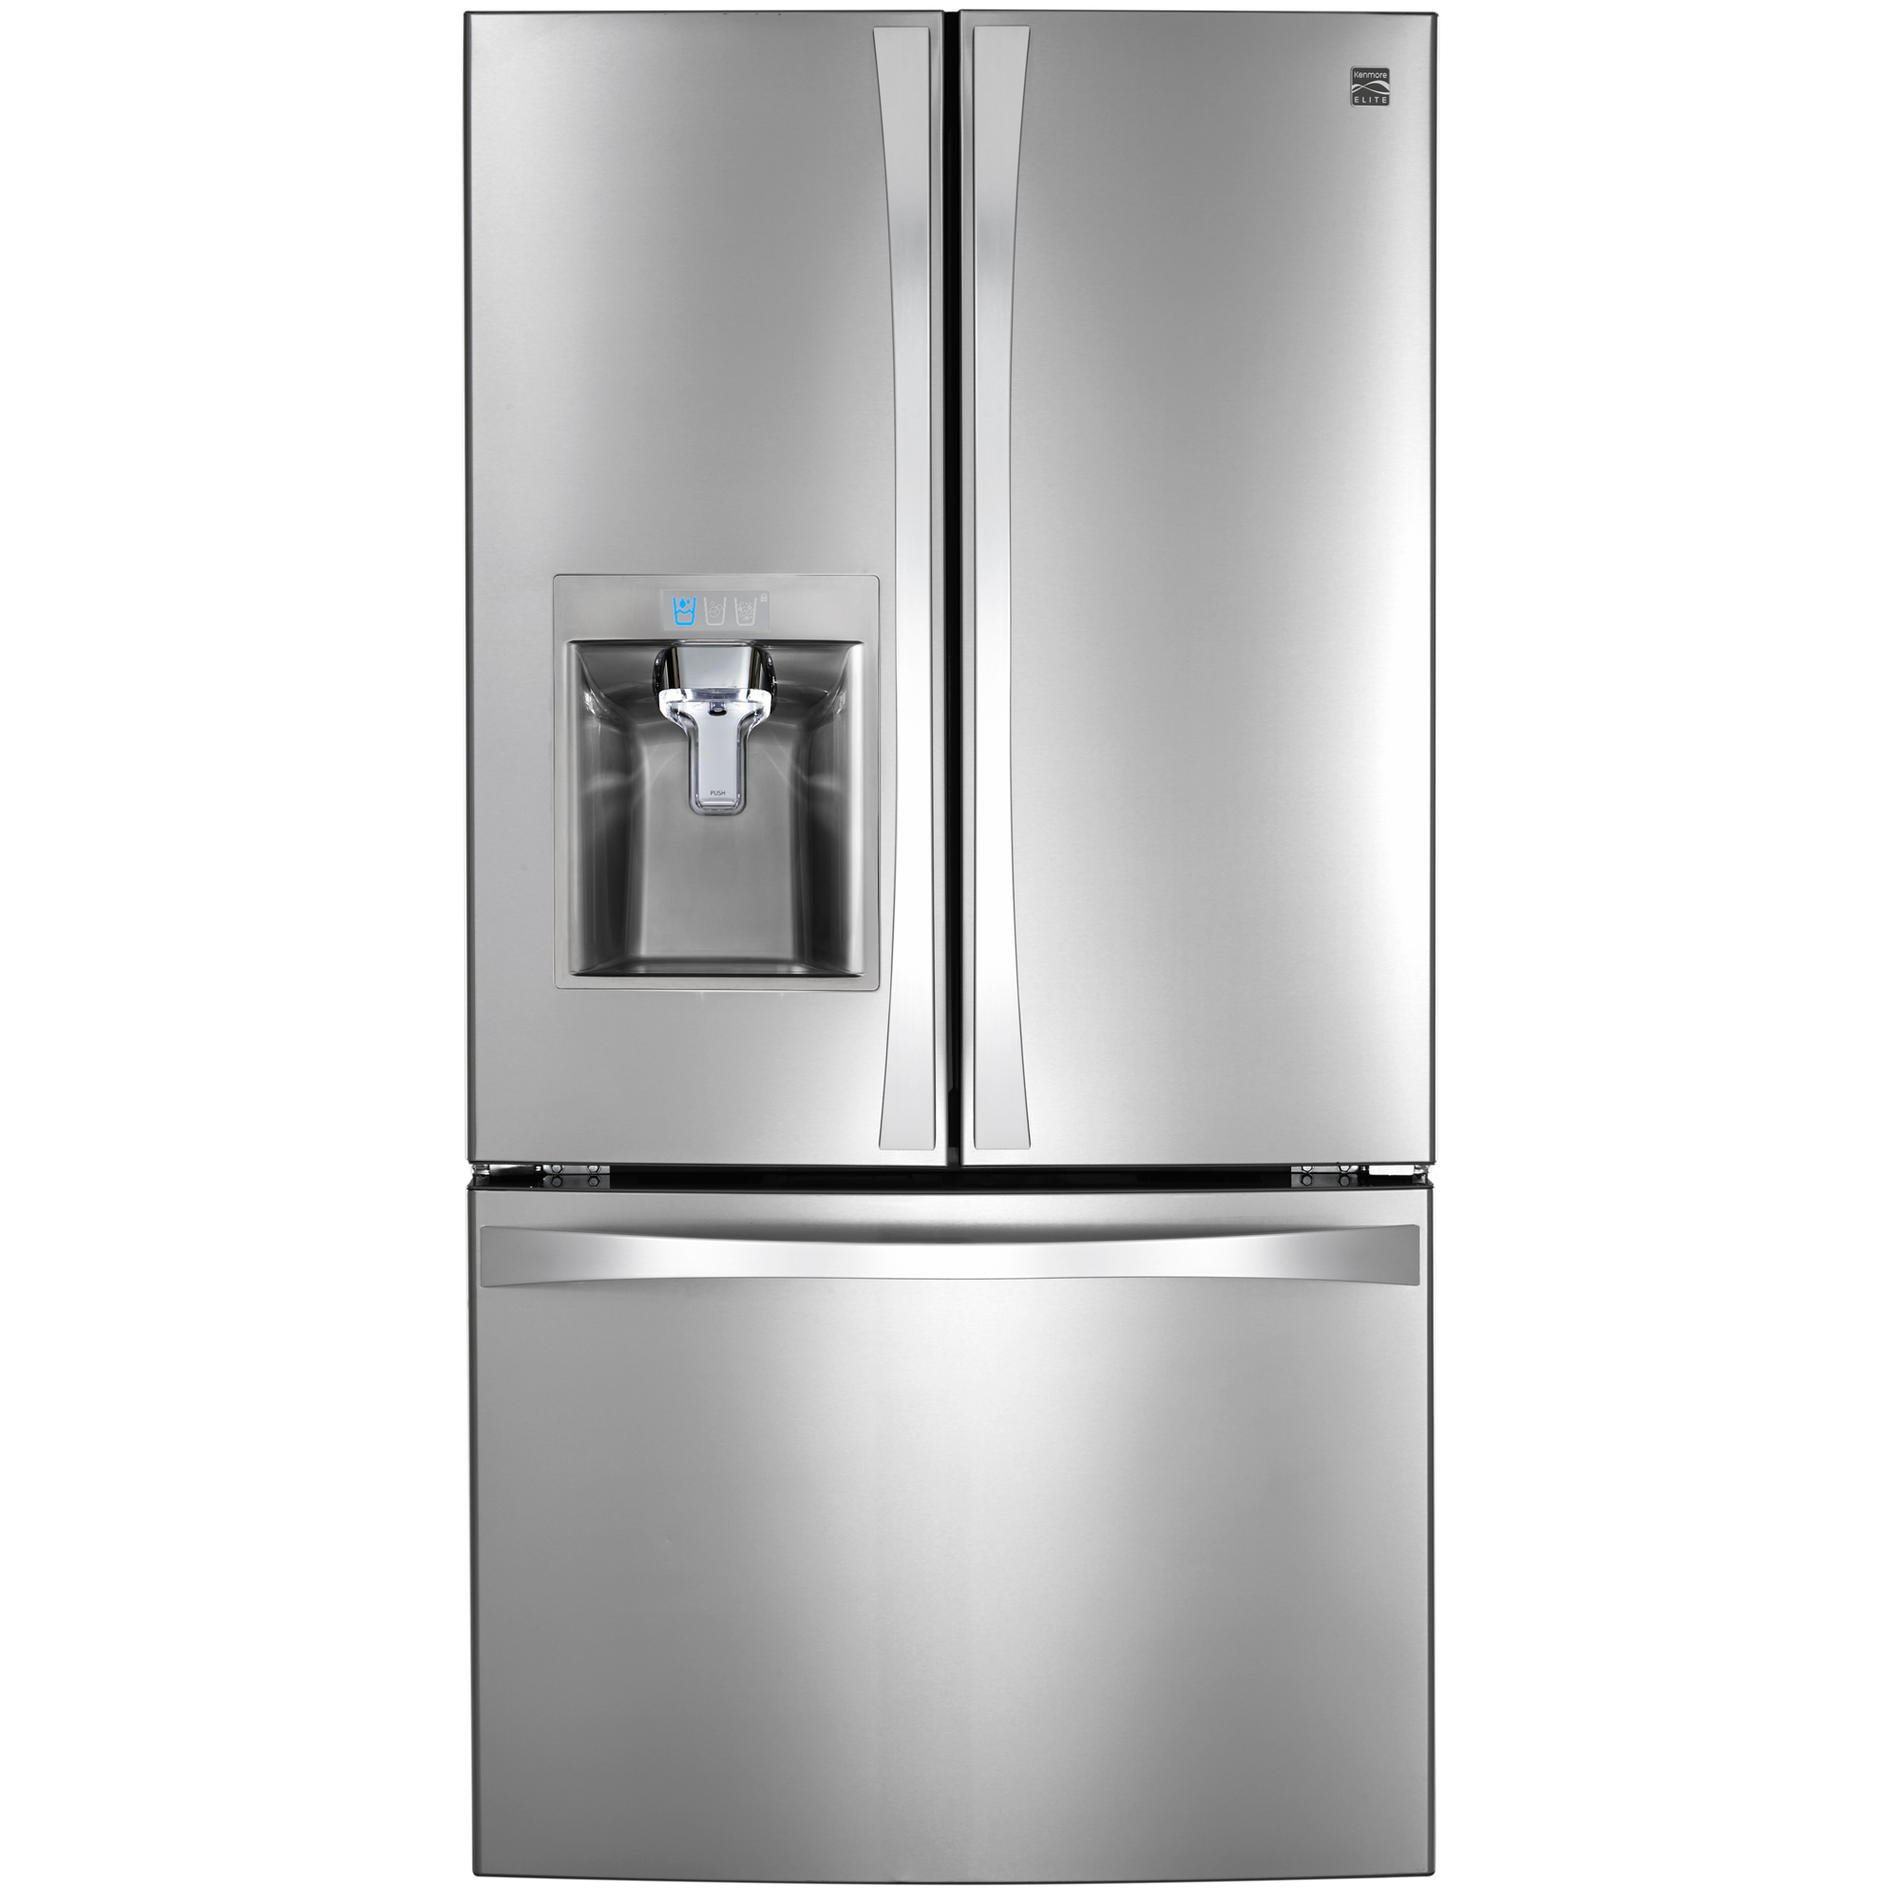 Kenmore Elite 74093 31.7 cu. ft. French Door Bottom Freezer Refrigerator in Stainless Steel, includes delivery and hookup (Available in select cities only)